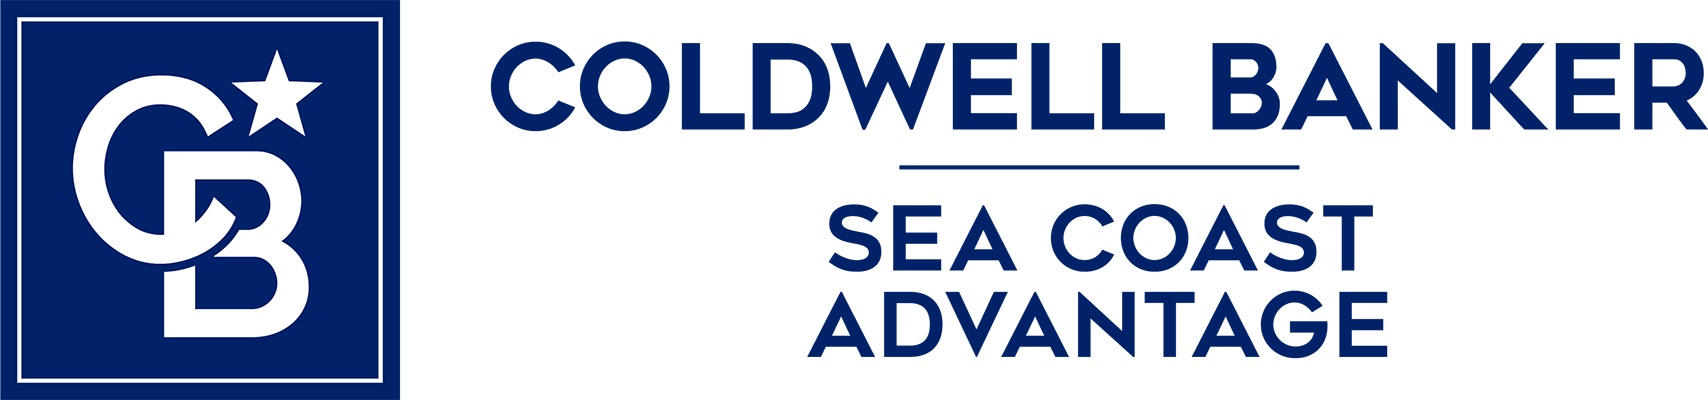 John Borklund - Coldwell Banker Sea Coast Advantage Realty